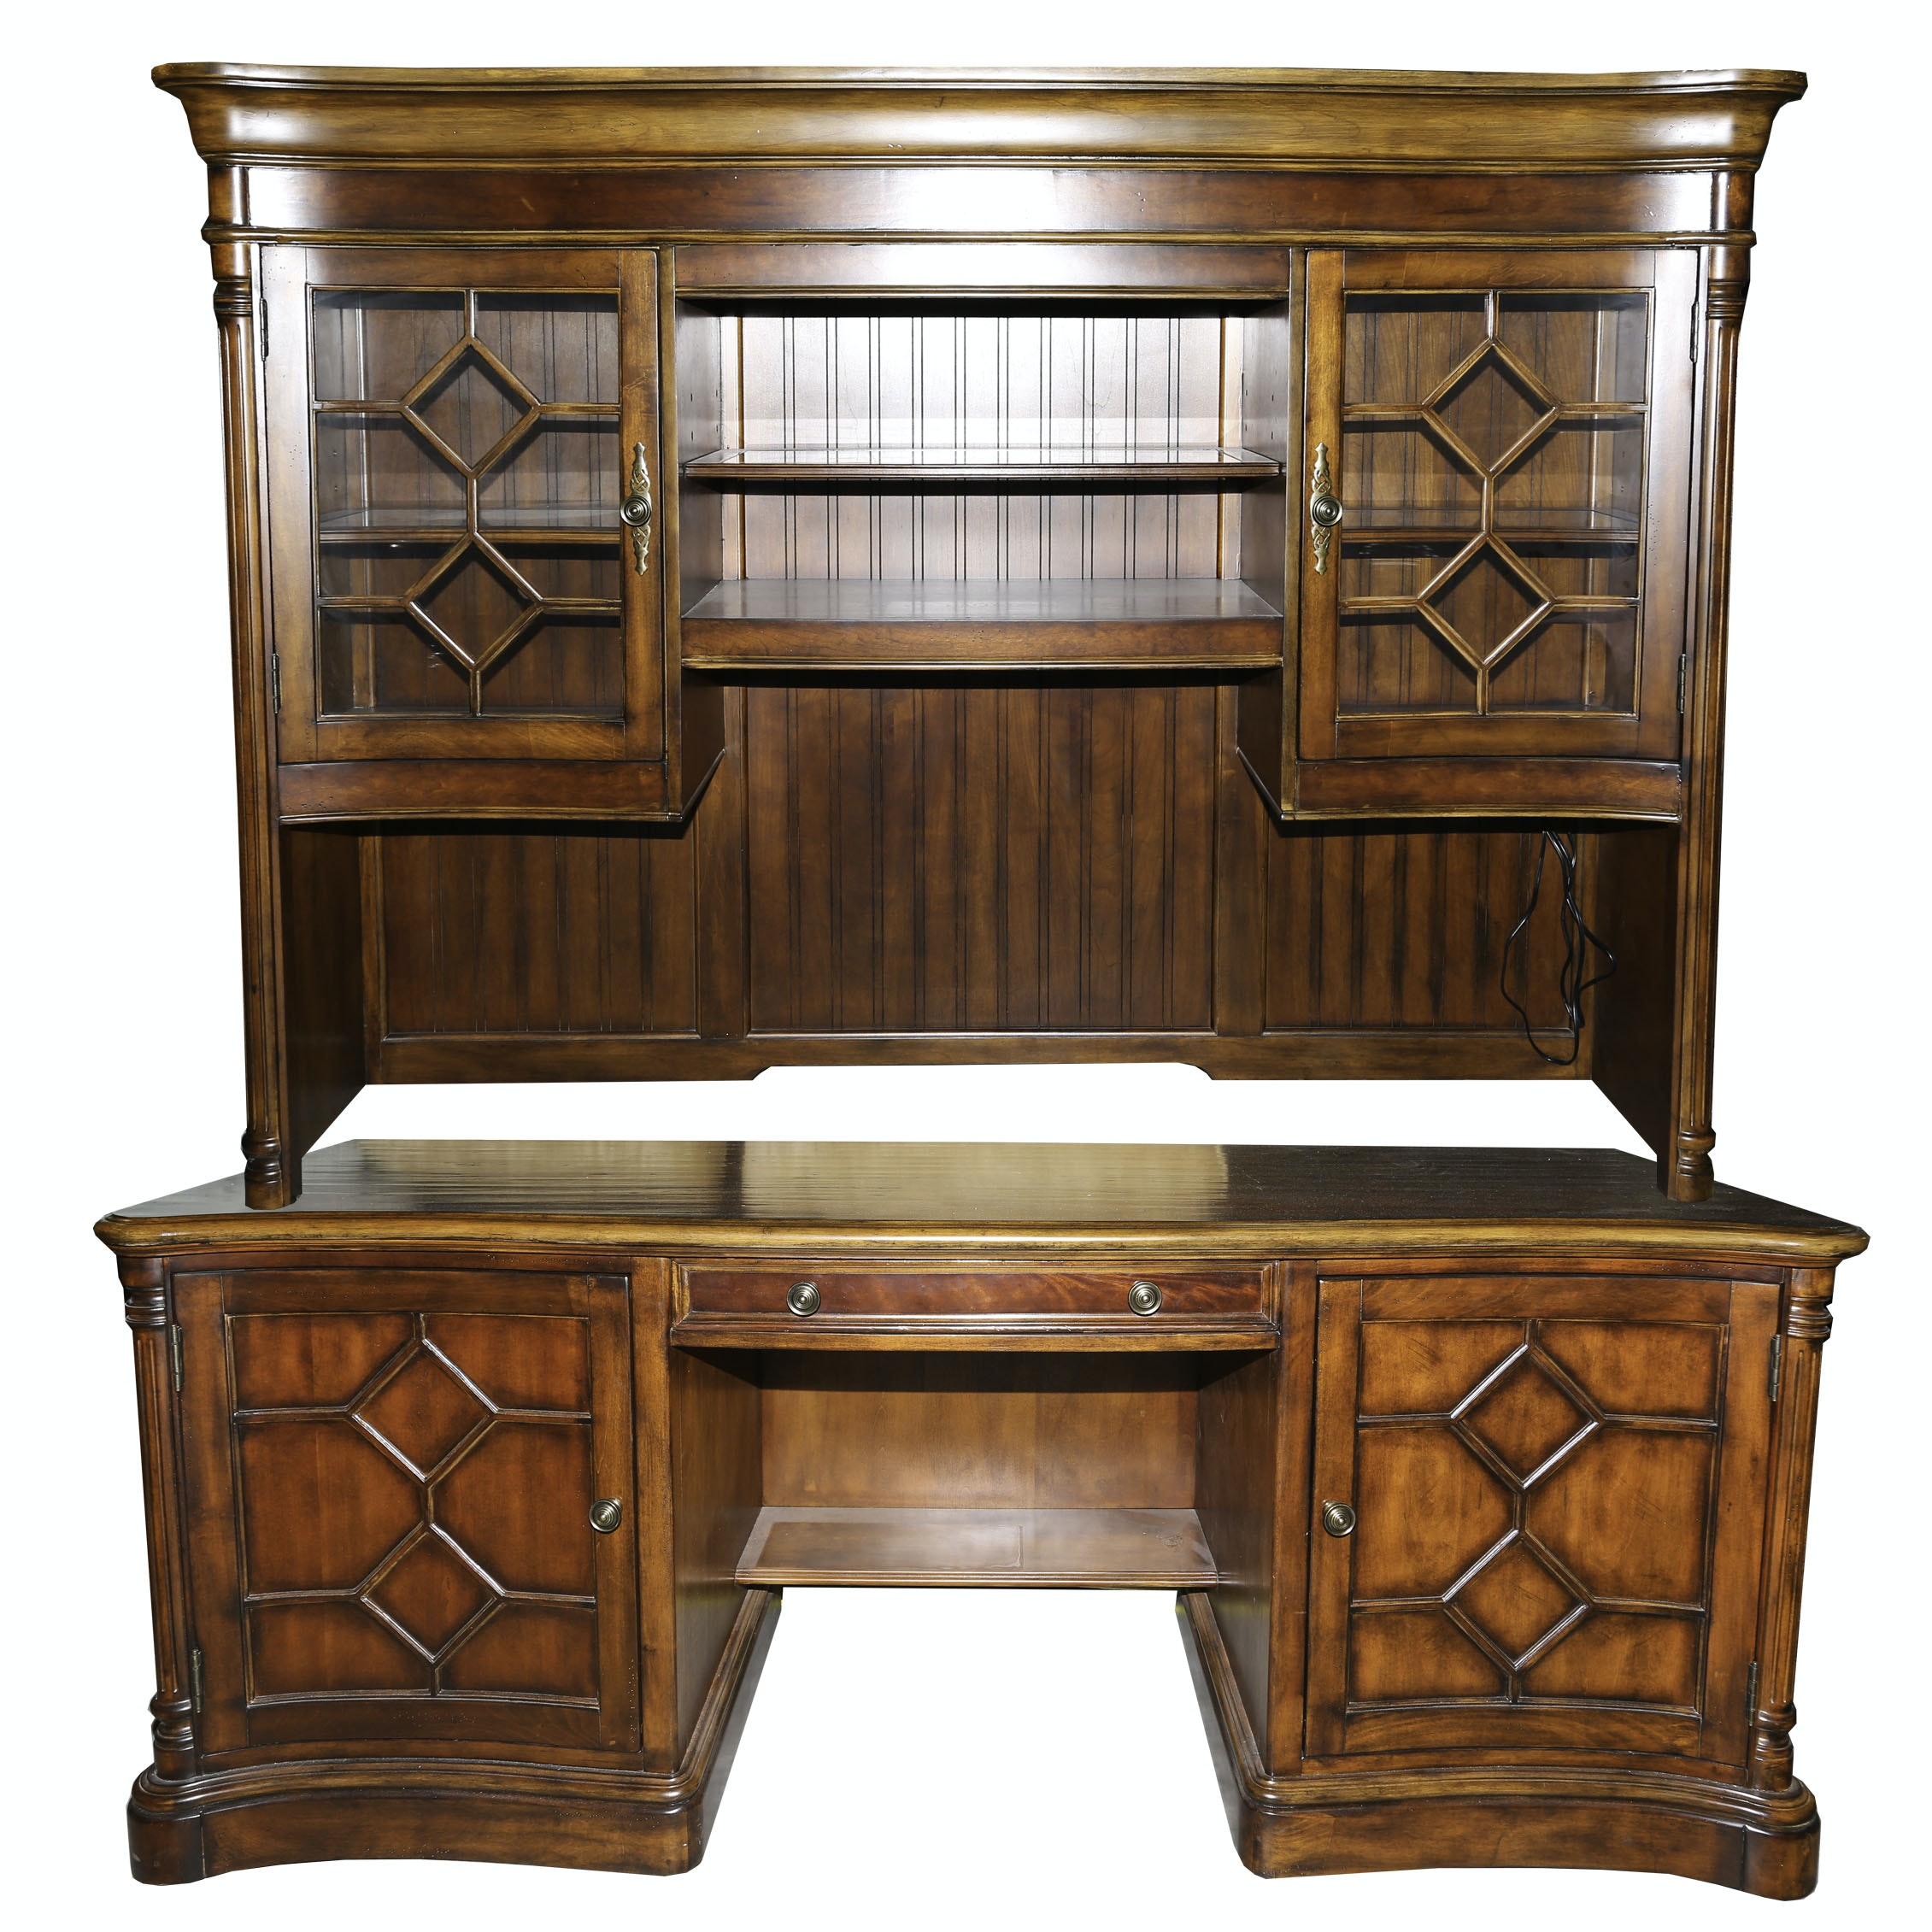 Vintage hooker furniture desk Desk With Hutch By Seven Seas By Hooker Furniture Ebthcom Online Furniture Auctions Vintage Furniture Auction Antique